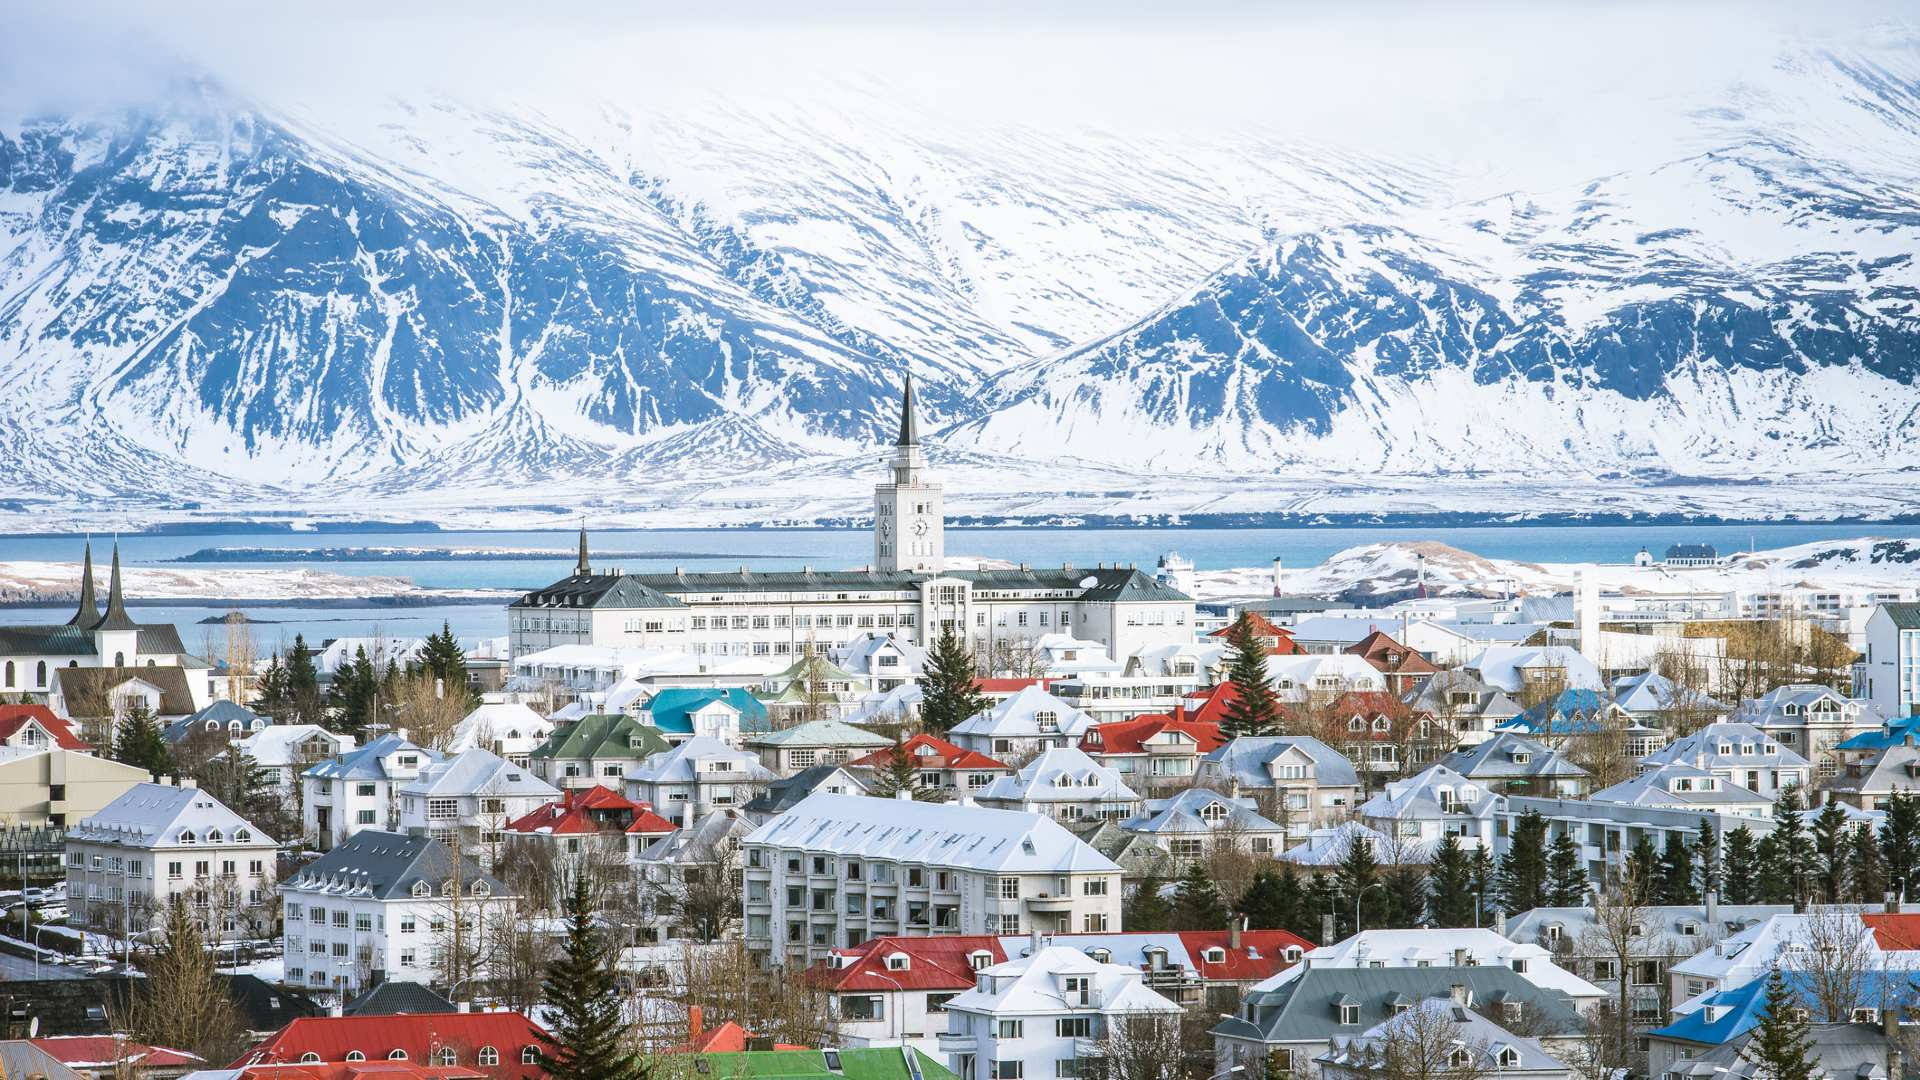 A wintry Reykjavík with the snowy Esja mountain in the background.